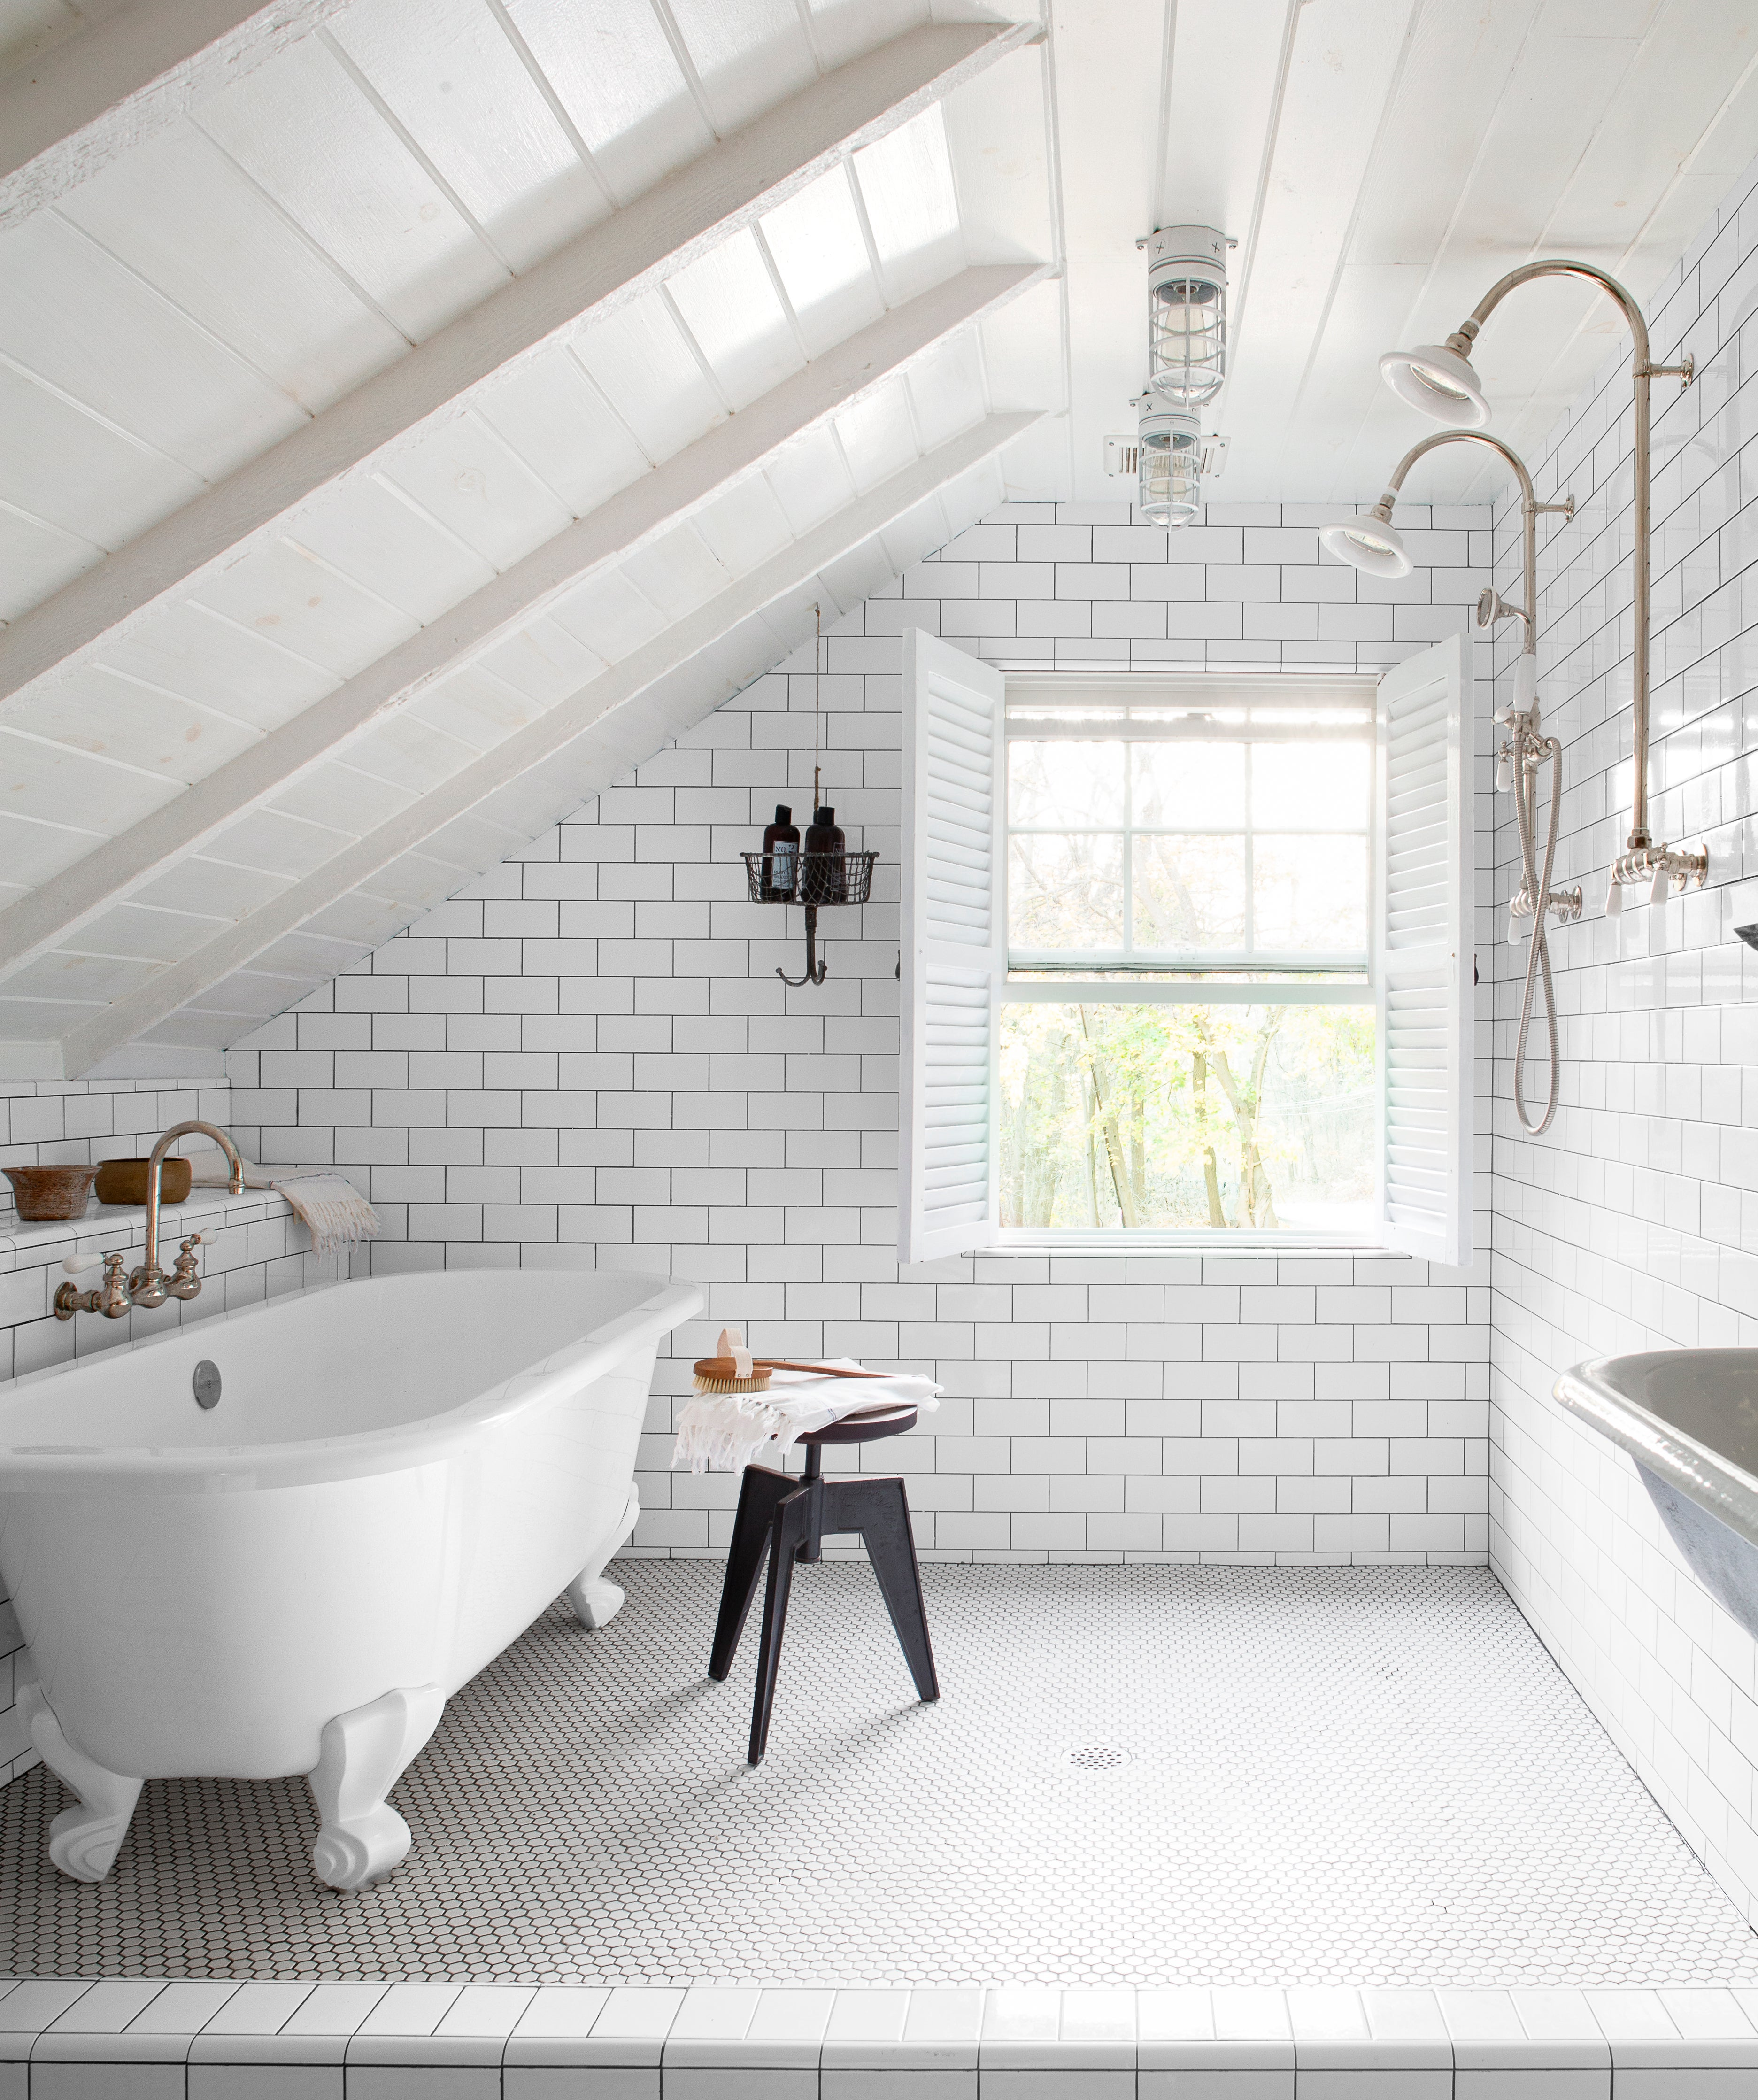 slanted roof with a tub and shower